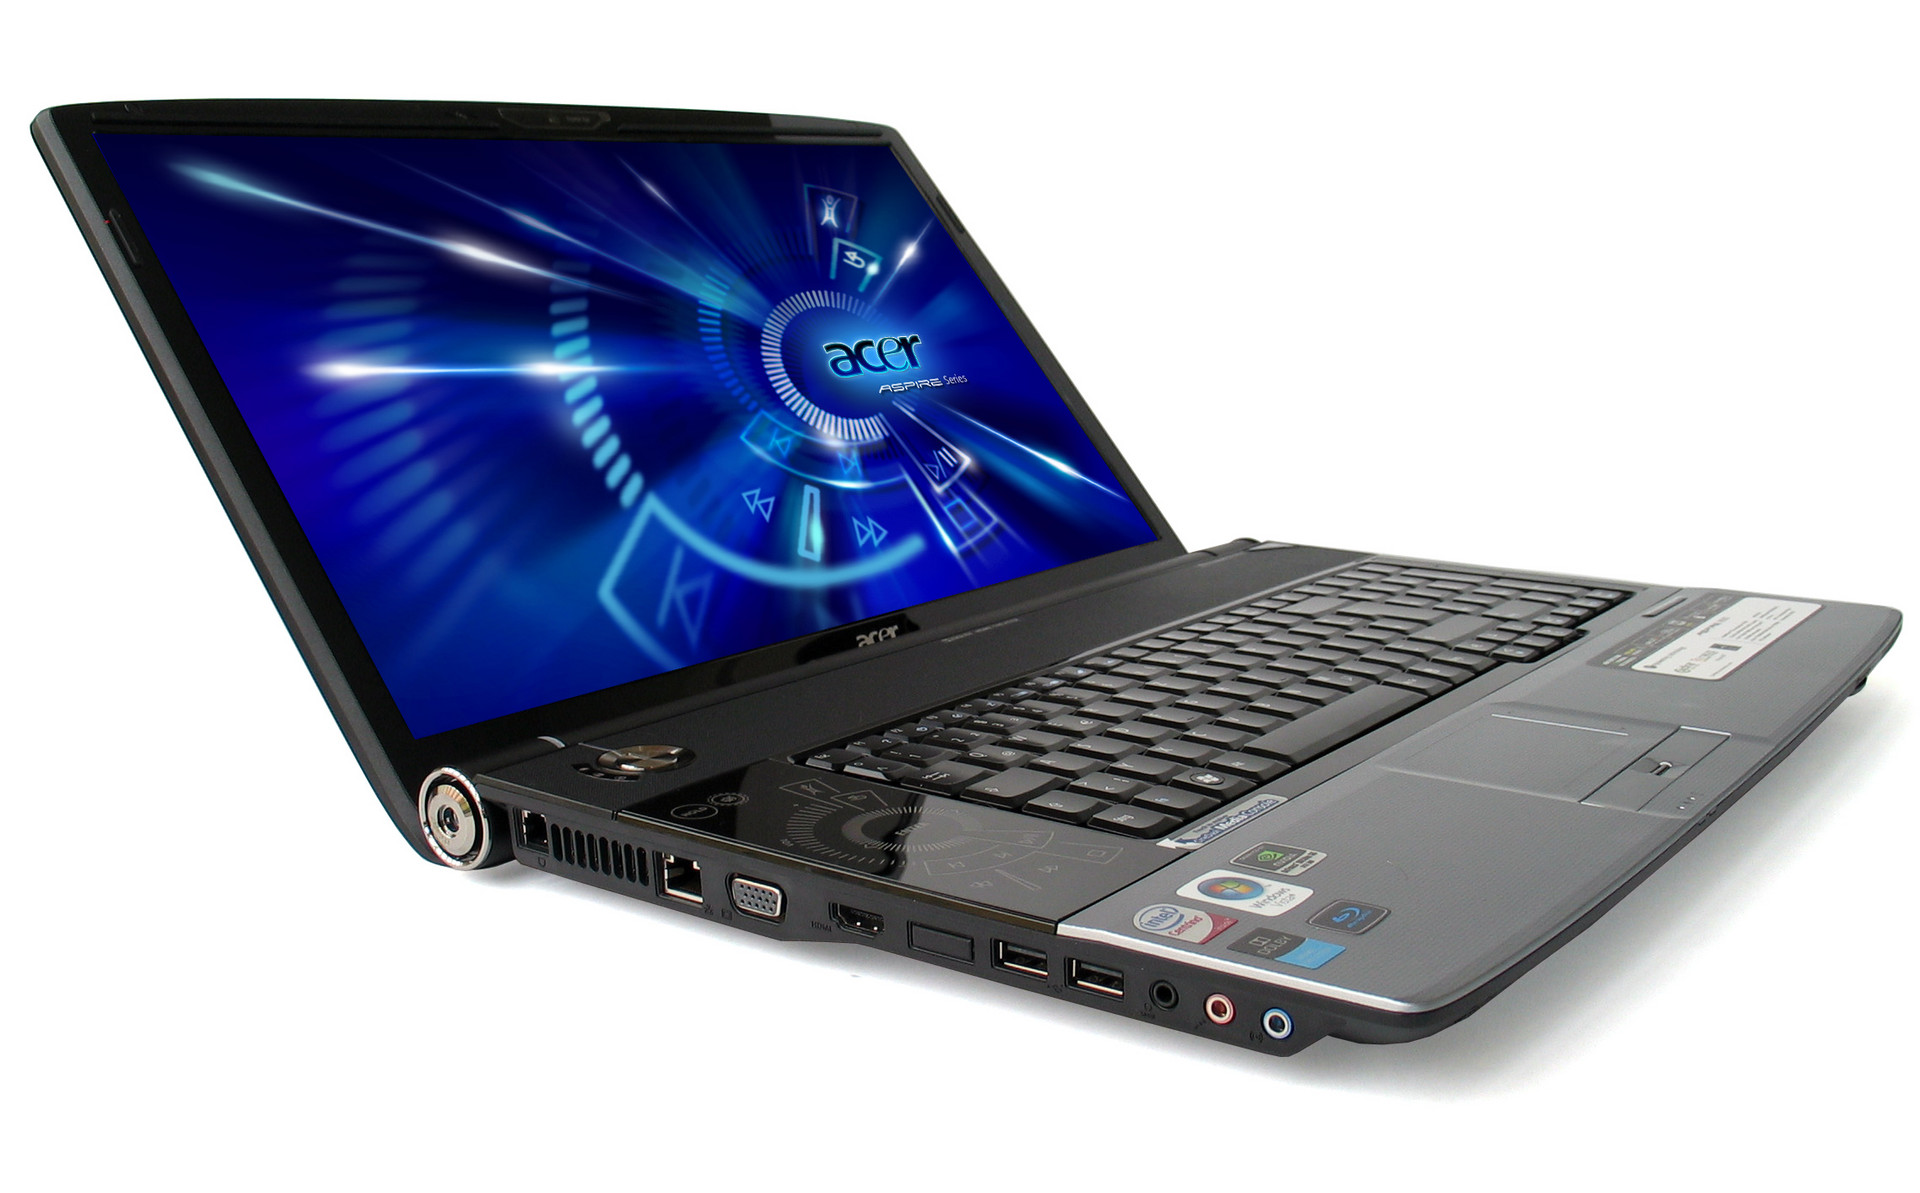 Notebook Klein Acer 8920g Driver For Mac Download